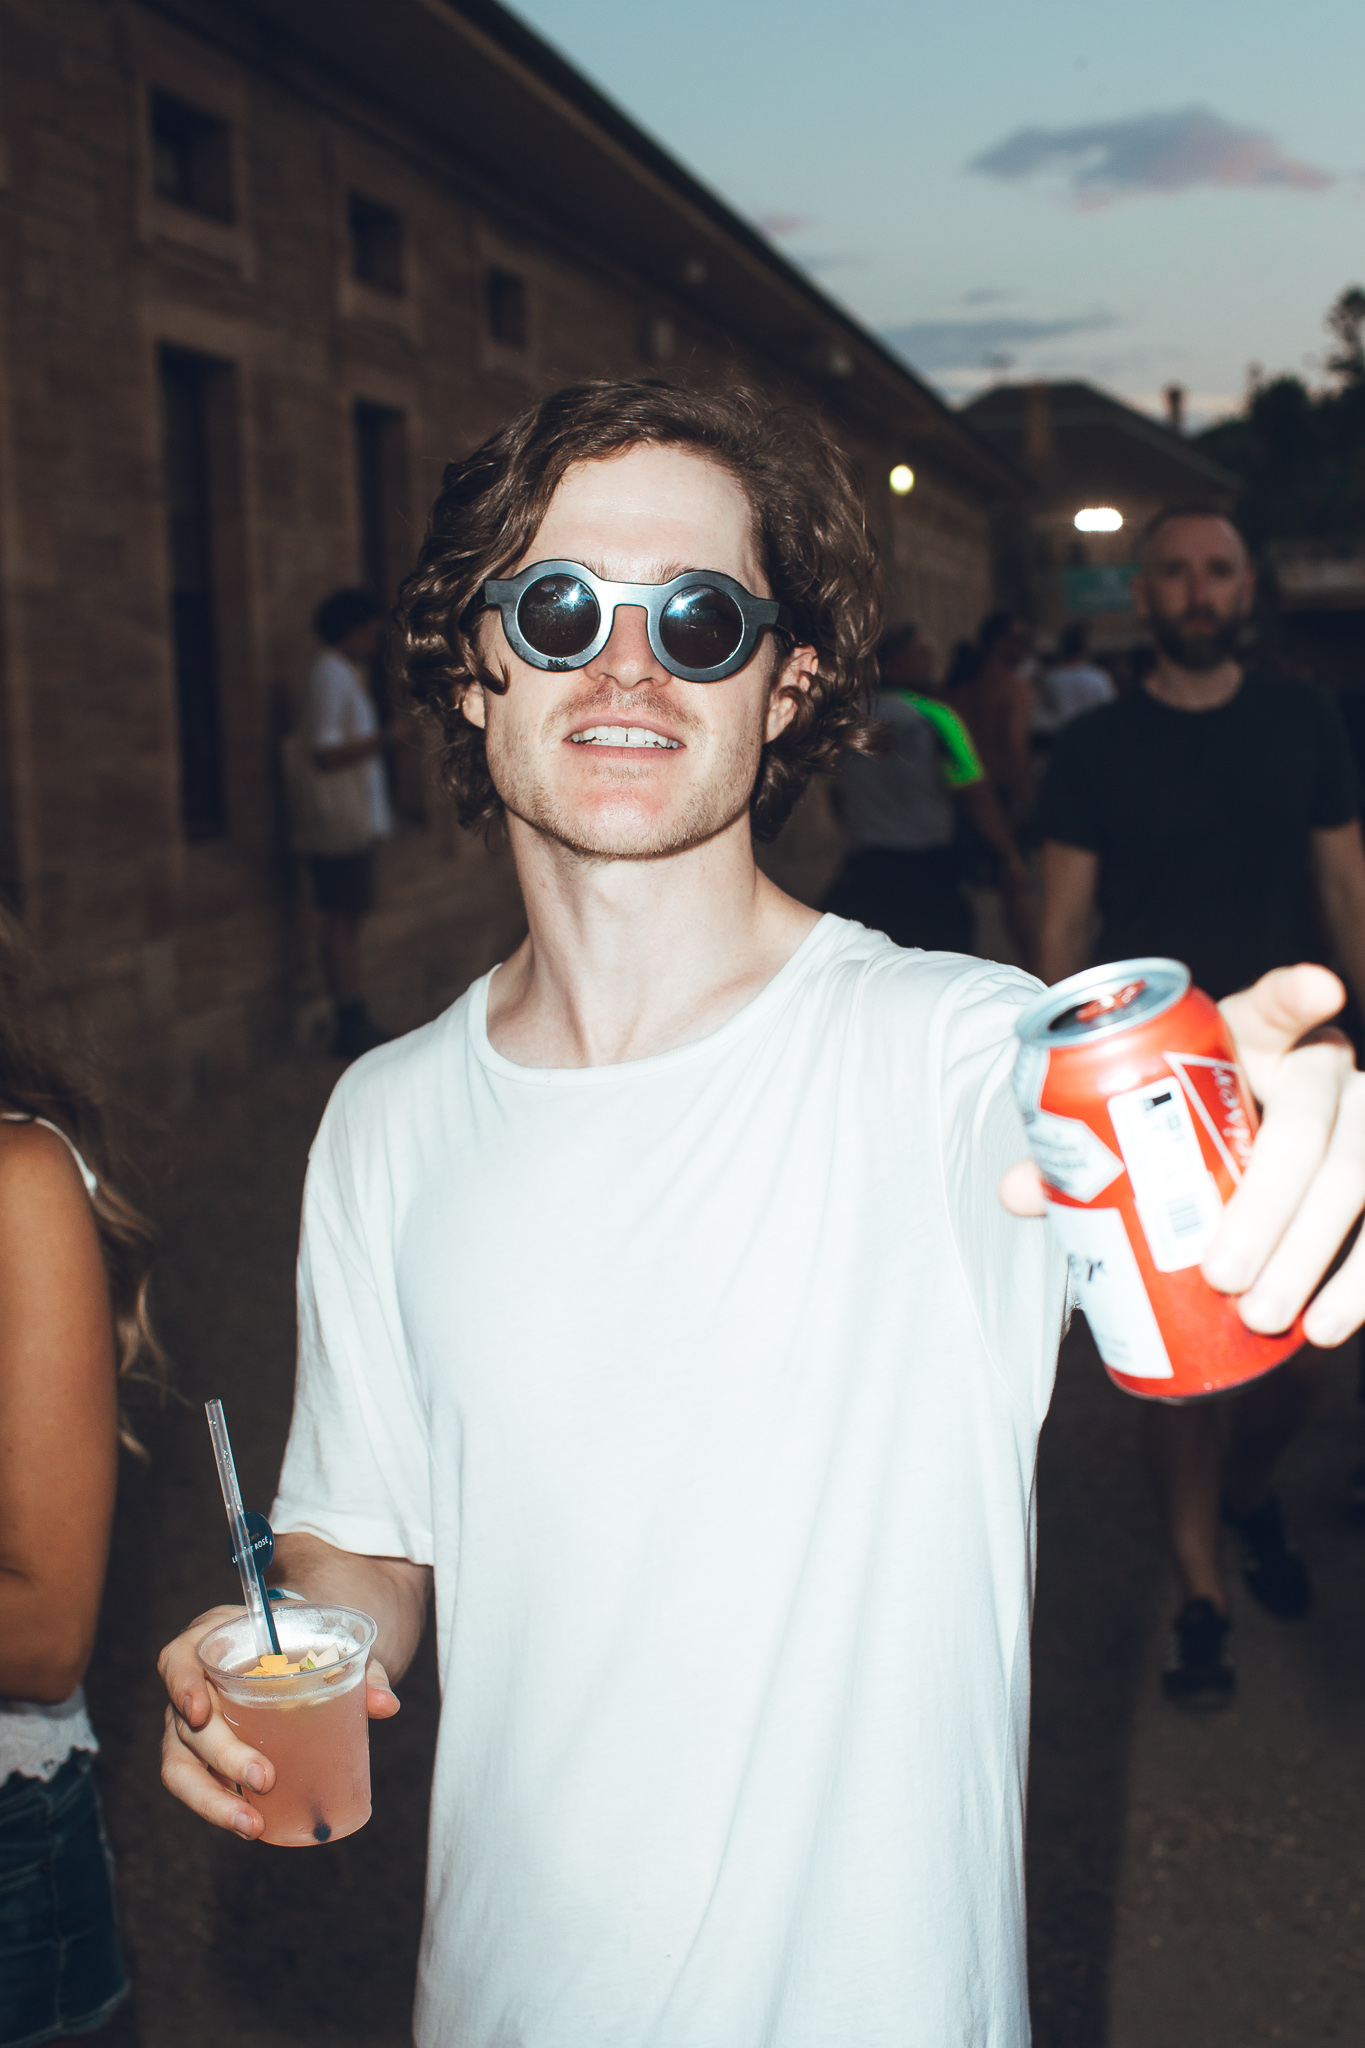 laneway_photo-by-oliver-minnett-01210